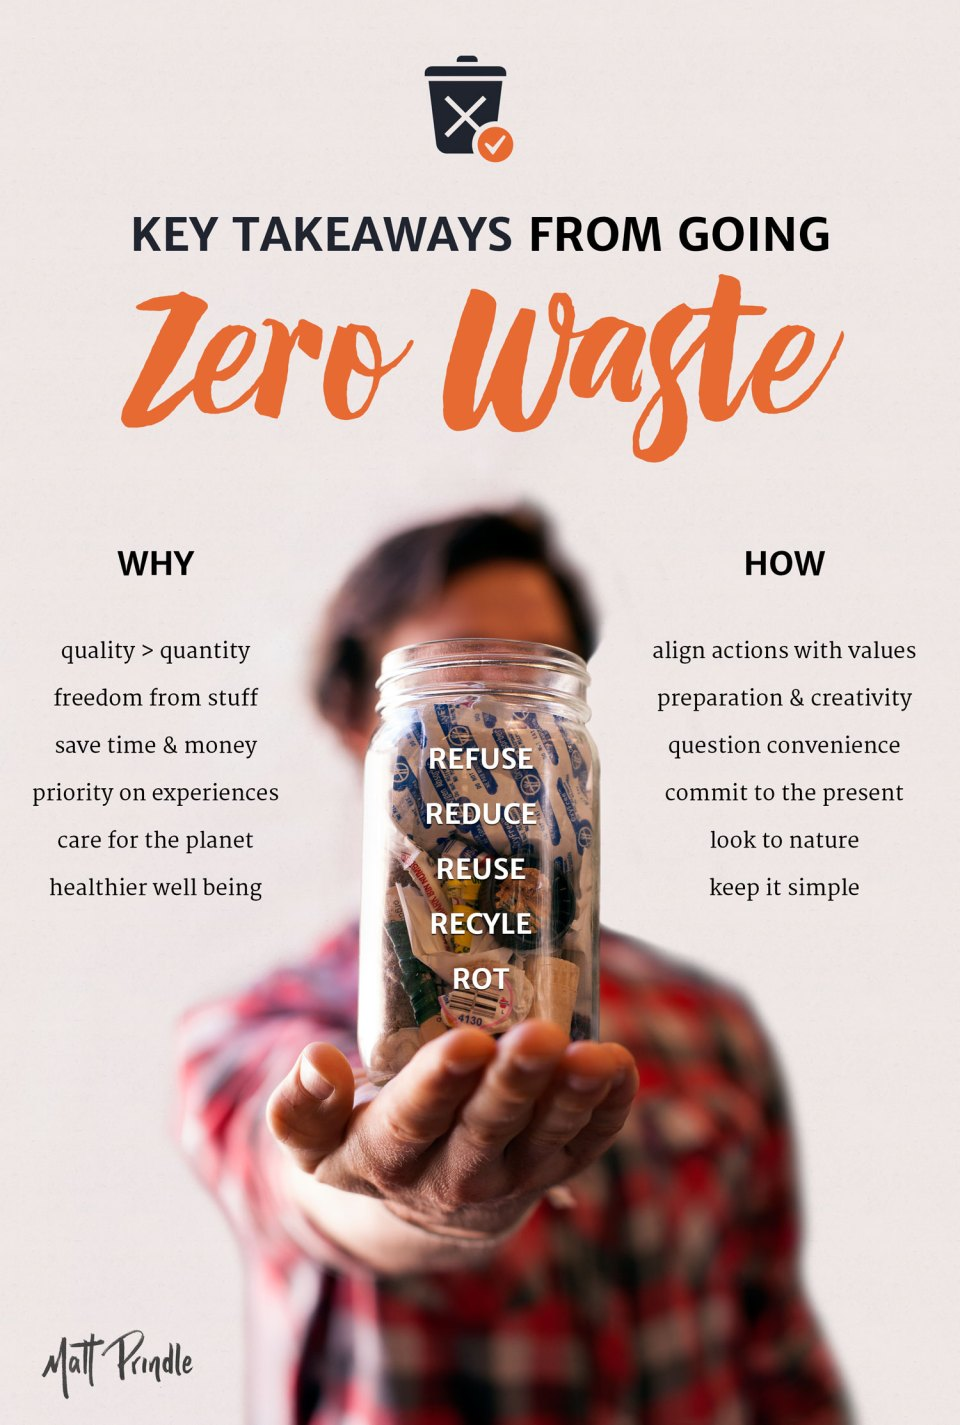 Key Takeaways from Living Zero Waste